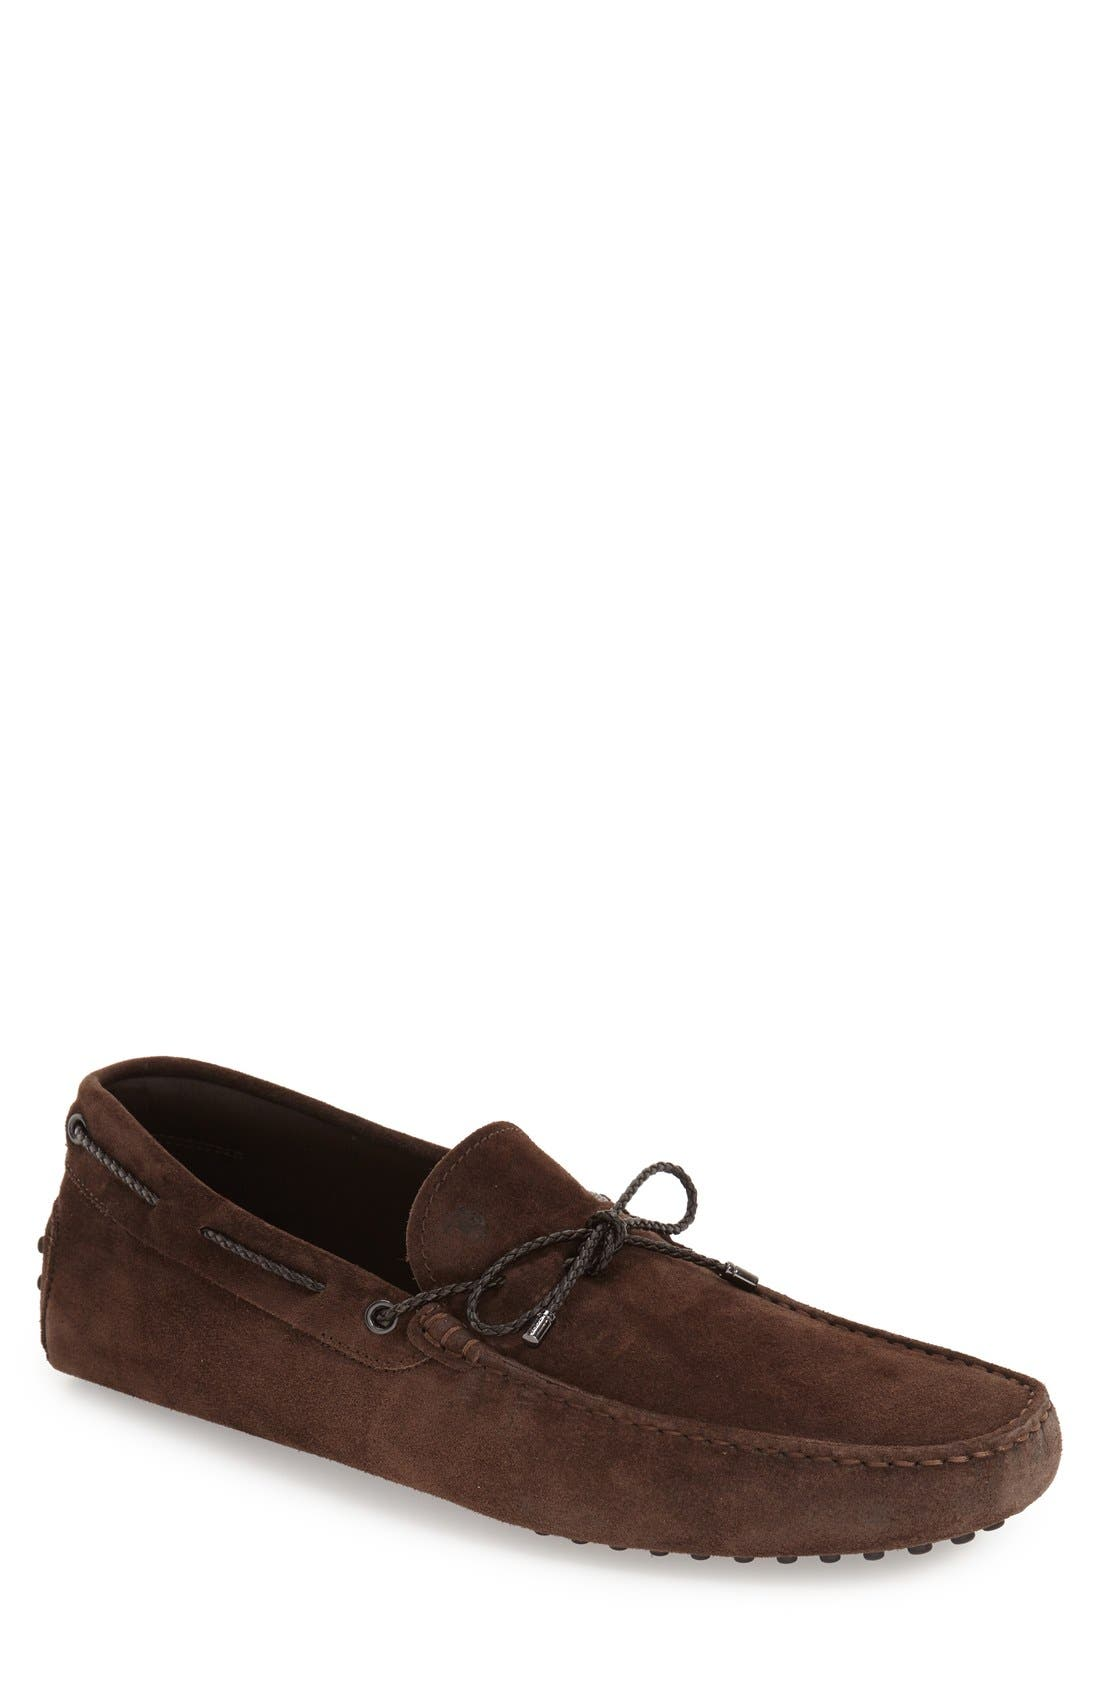 Tods Gommini Driving Shoe,                         Main,                         color, 252